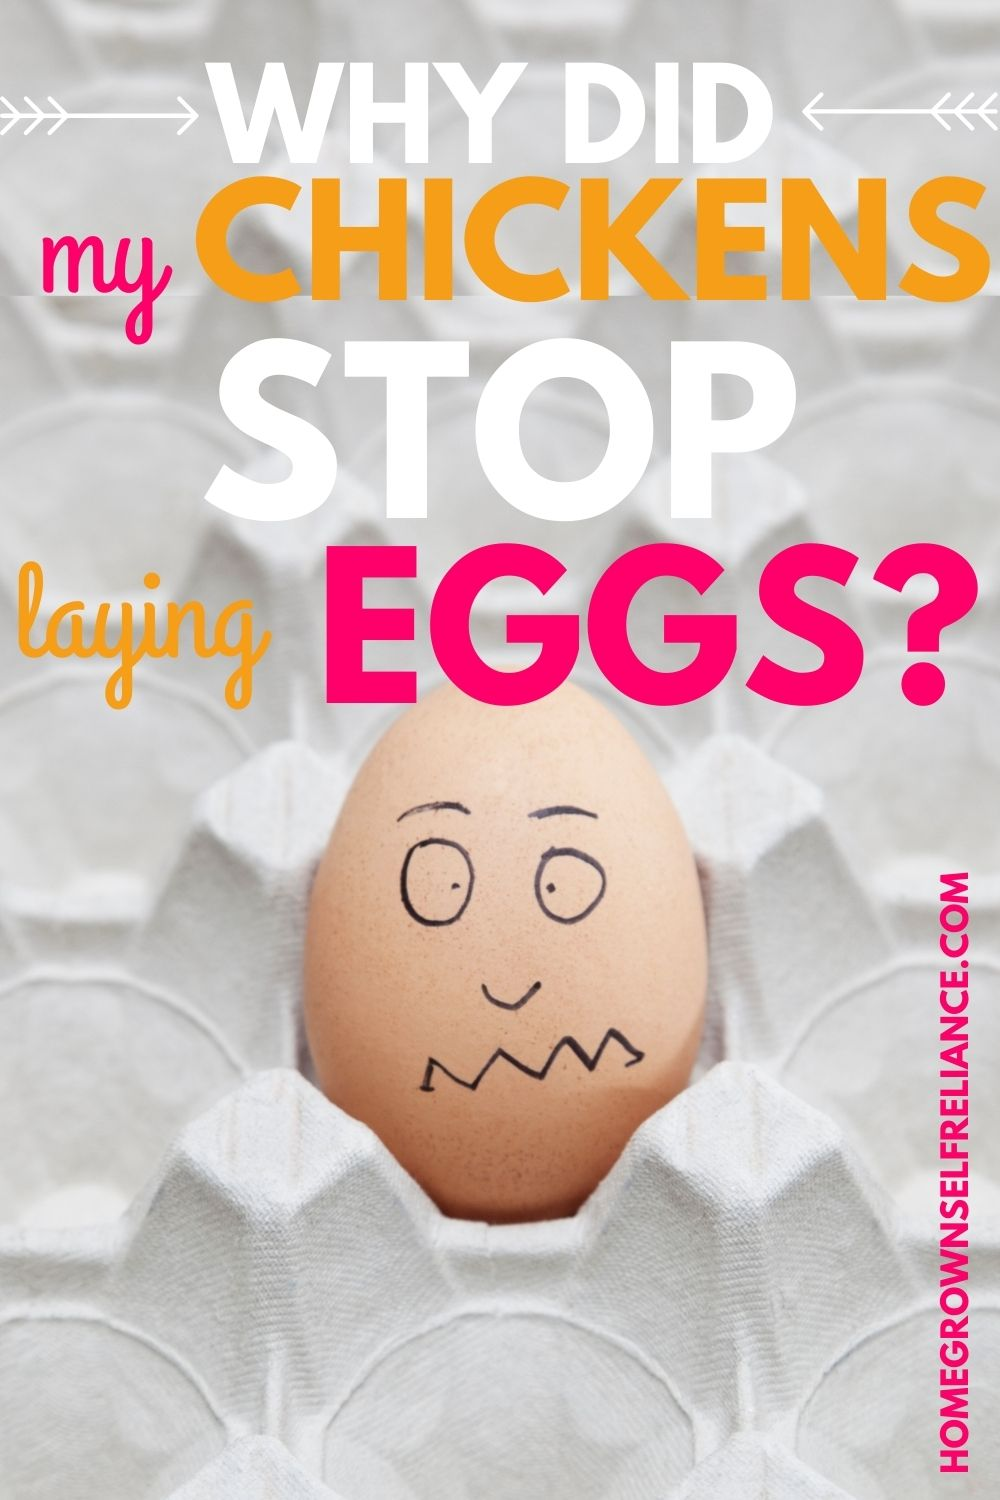 chickens stop laying eggs, Why Did My Chickens Stop Laying Eggs?